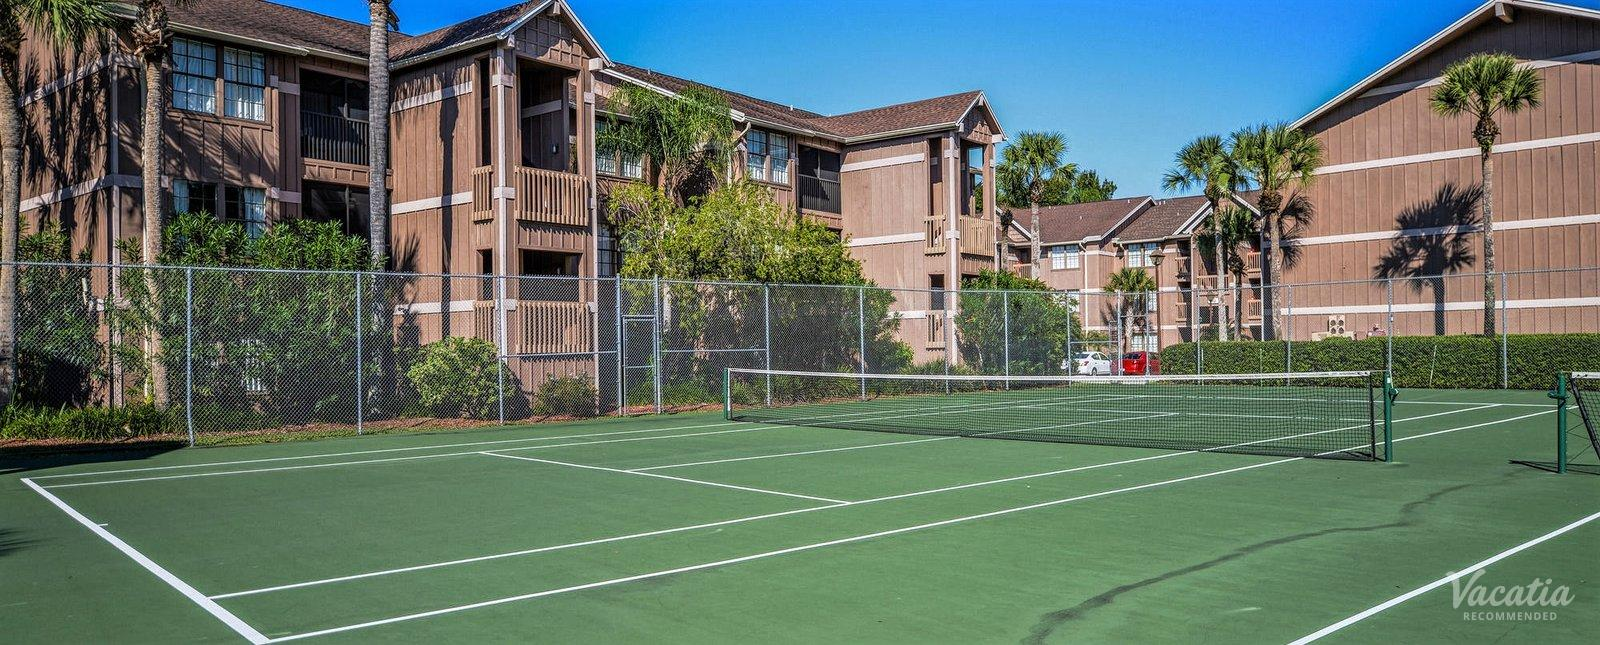 Polynesian Isles Resort Tennis Courts